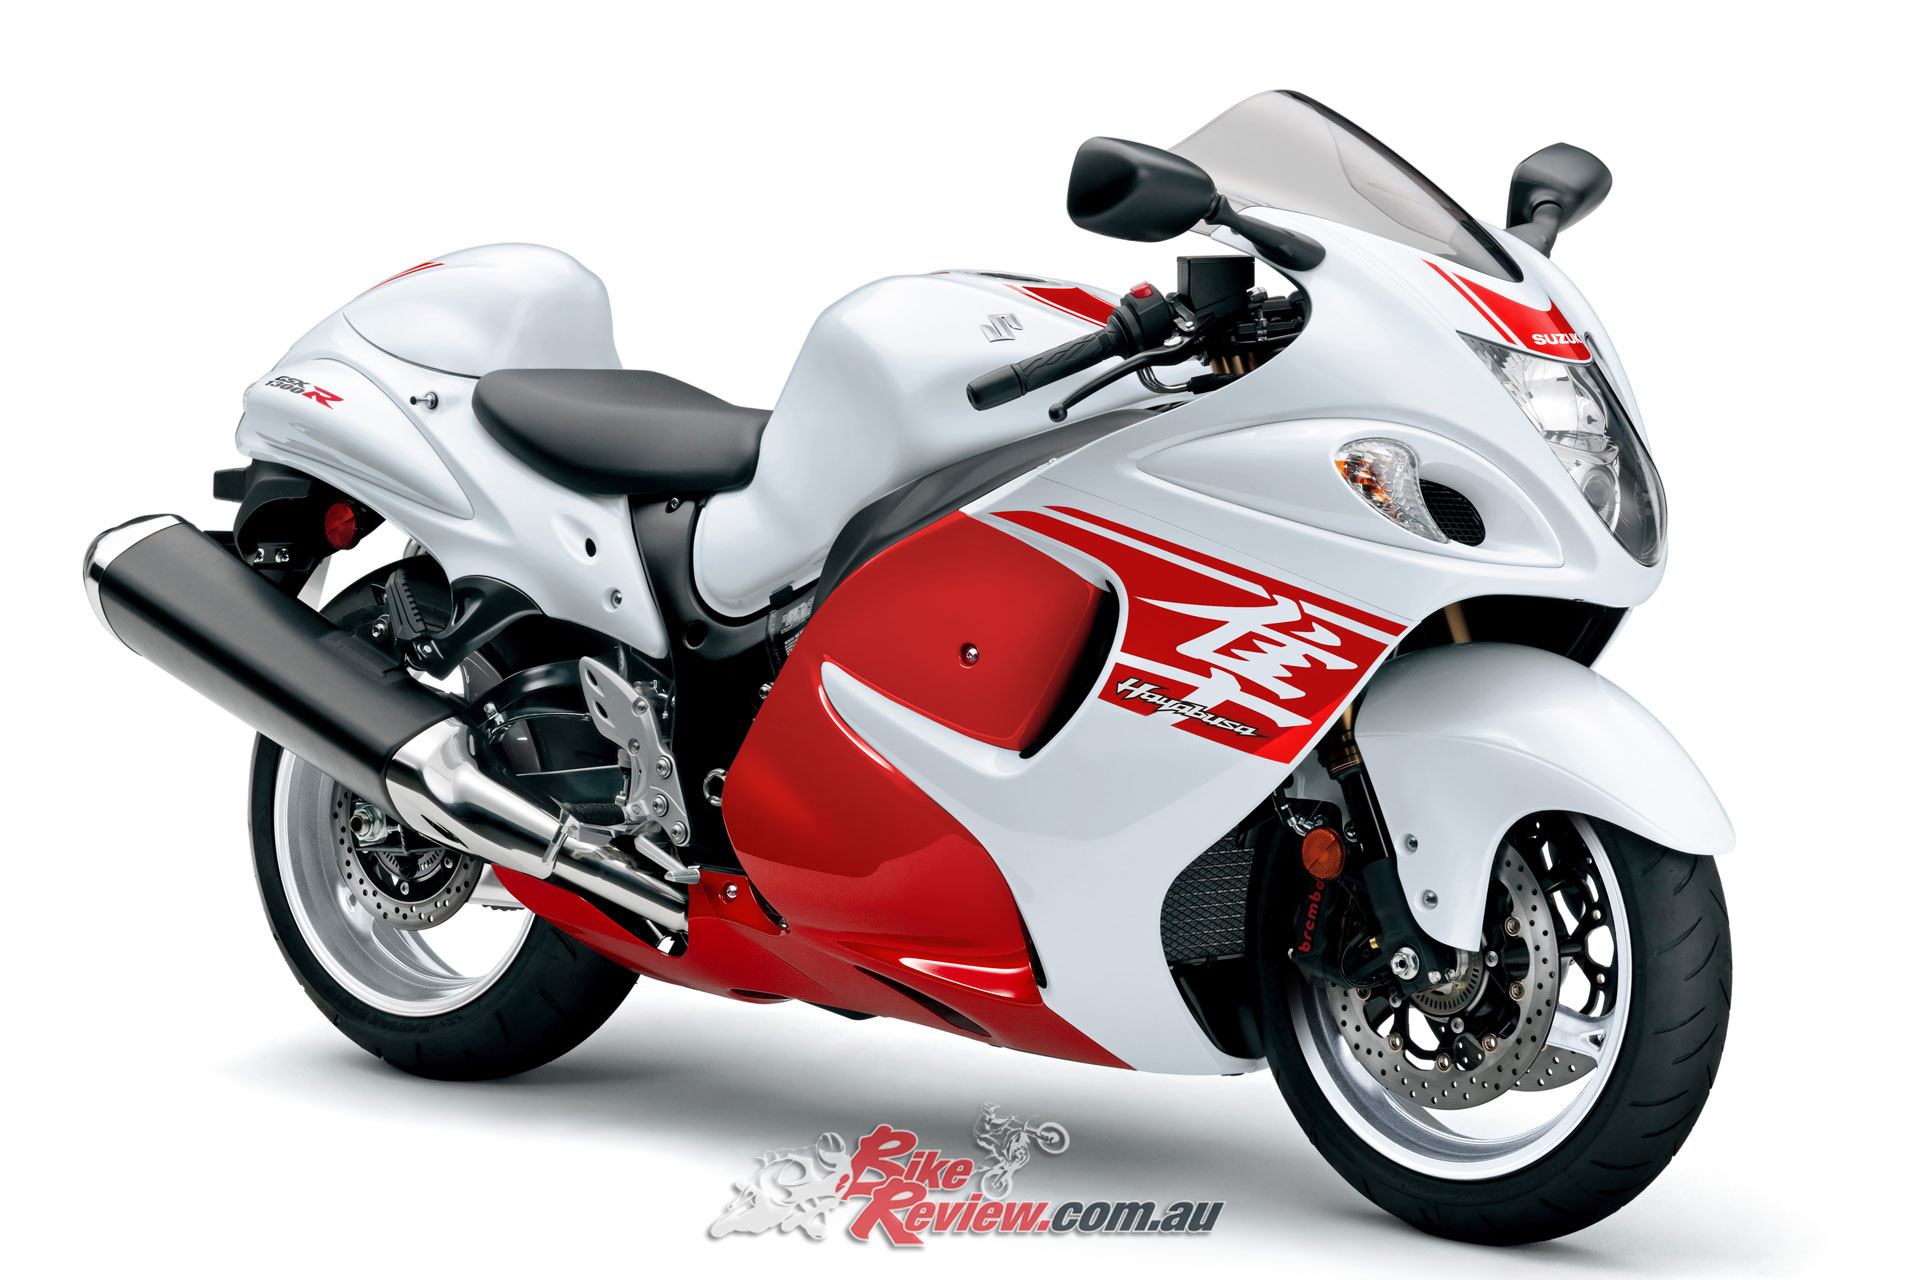 2018 Hayabusa Sports Two New Colour Schemes Bike Review